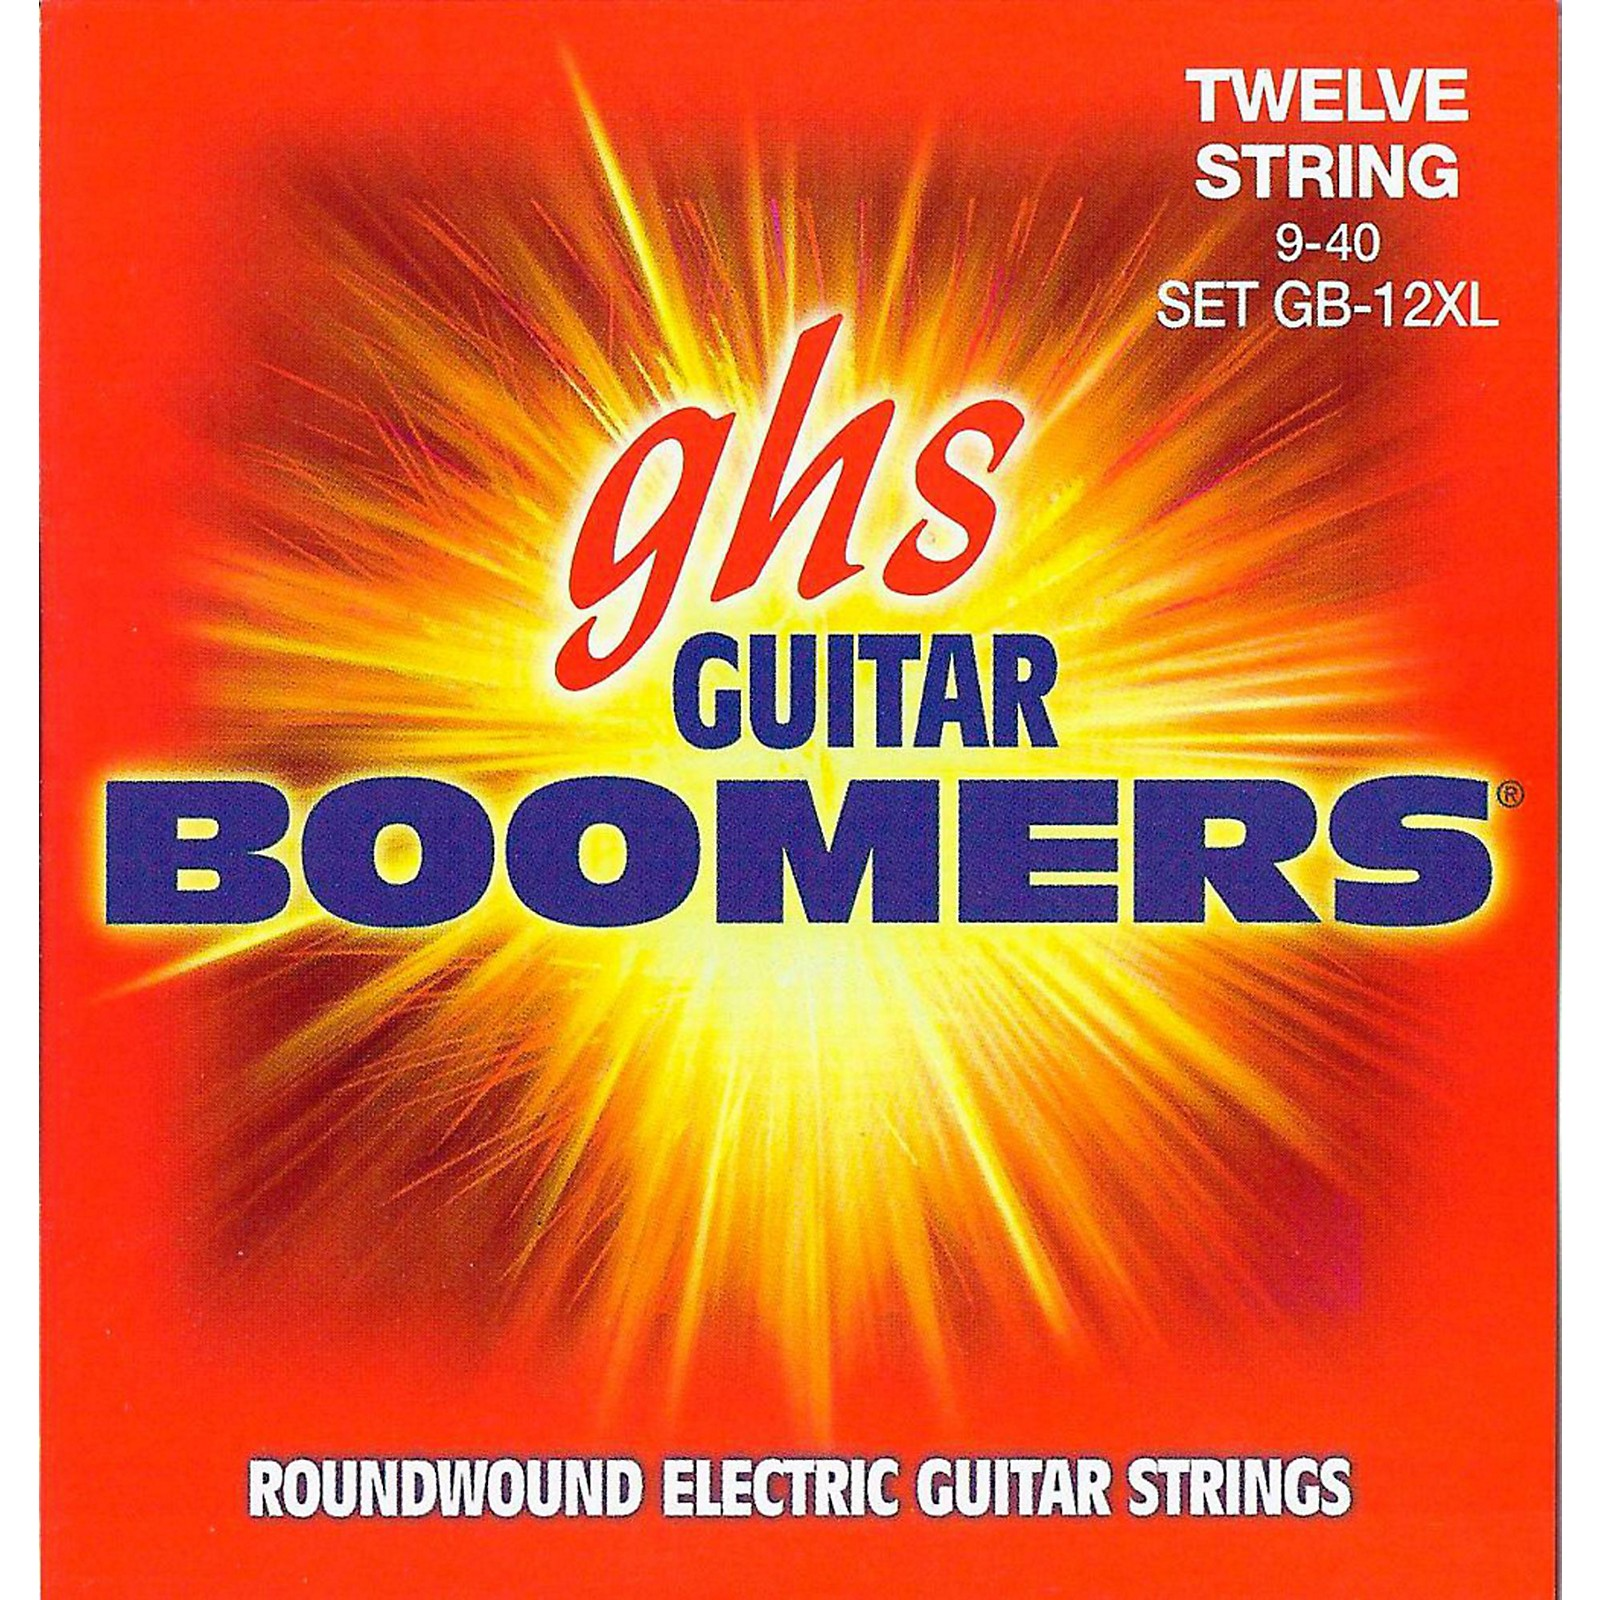 GHS Boomer 12 String Extra Light Electric Guitar Set (9-40)